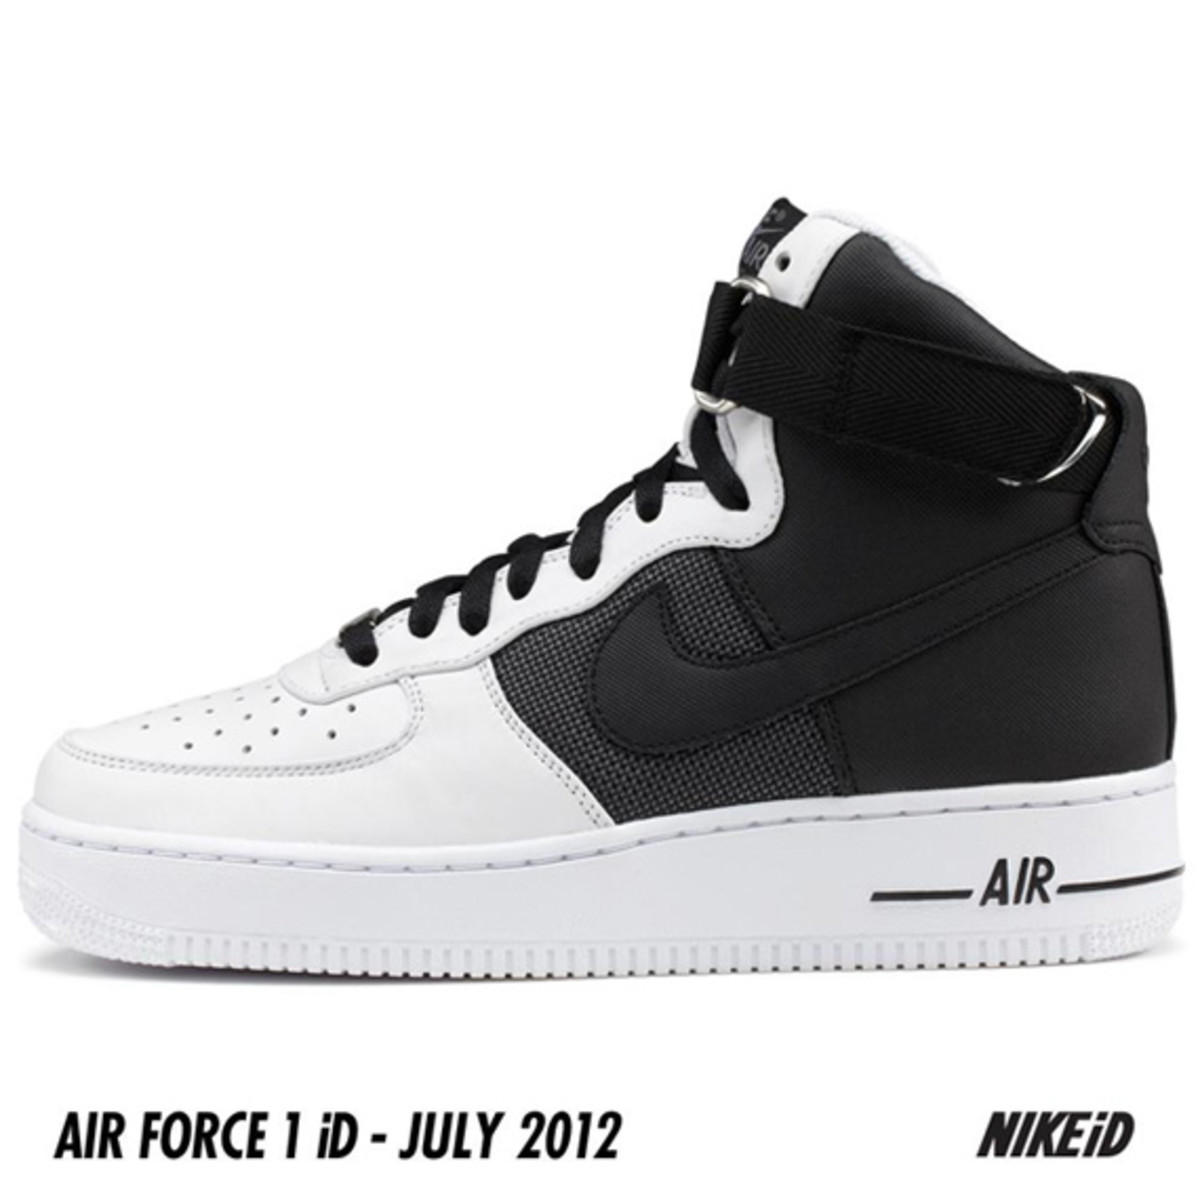 nikeid-air-force-1-id-tactical-mesh-grip-leather-design-july-2012-03